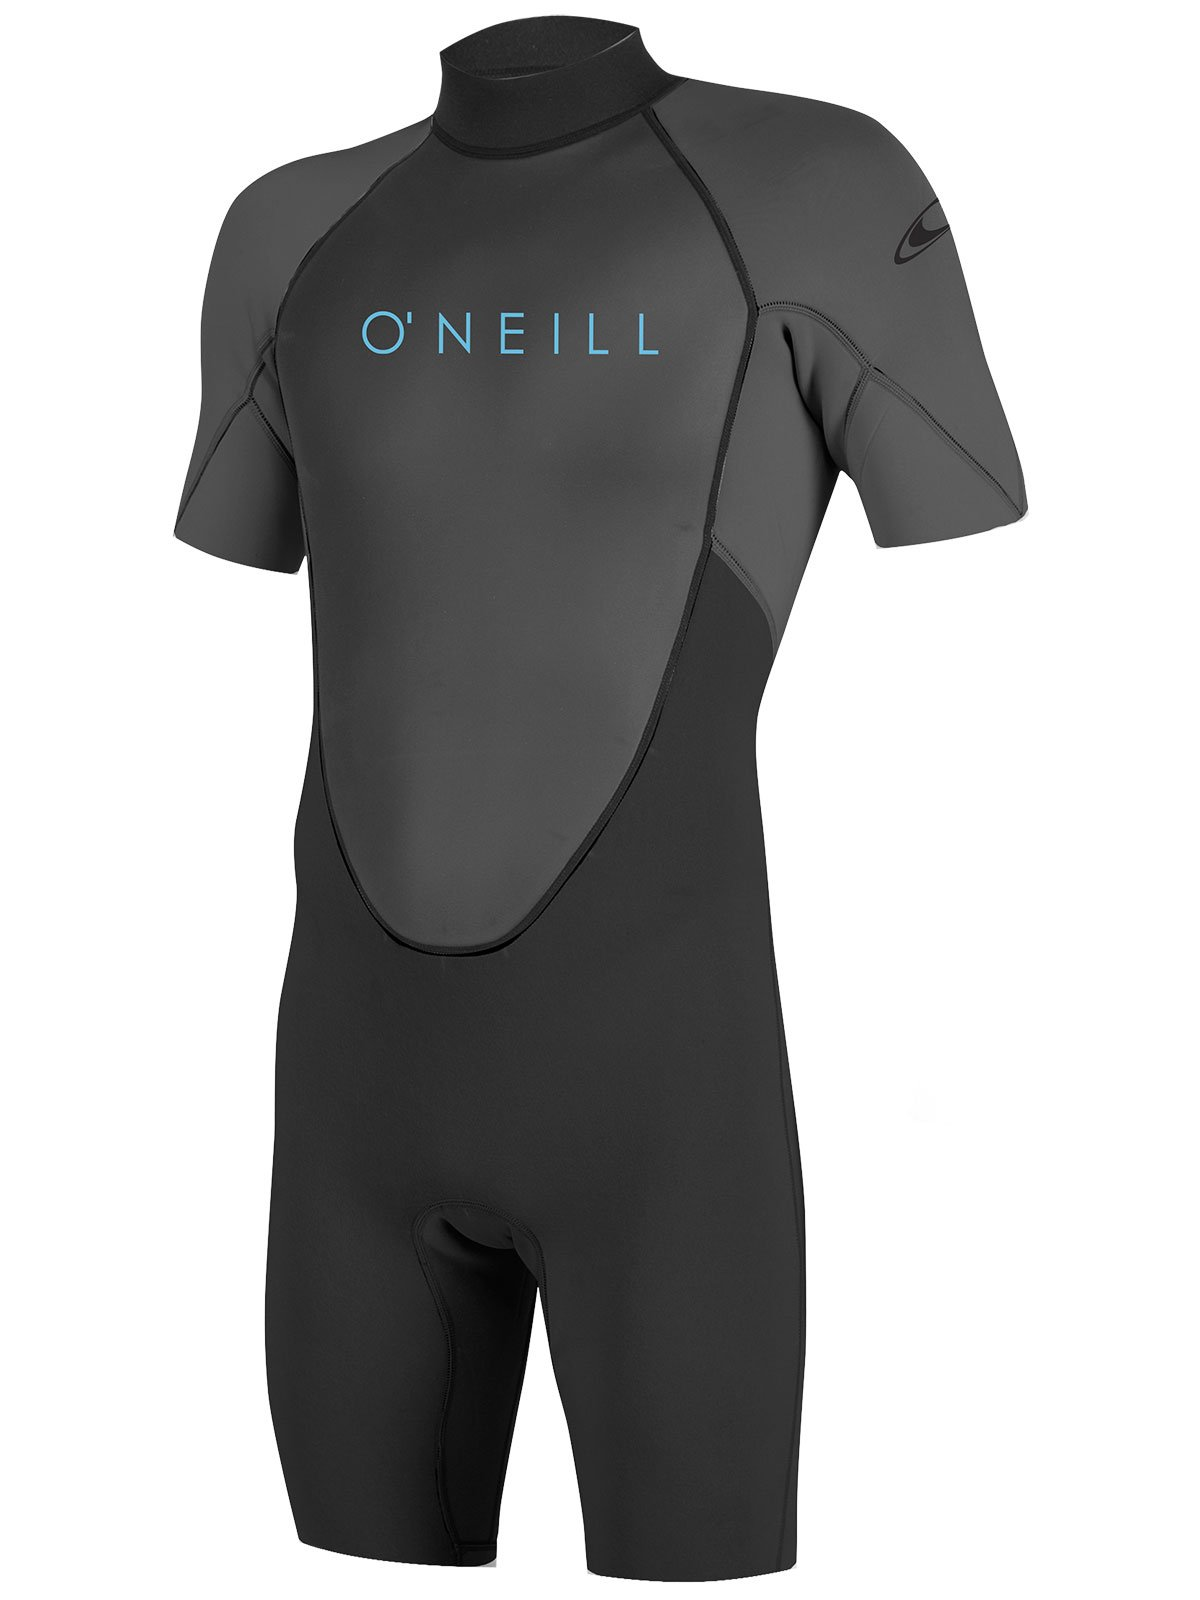 O'Neill Youth Reactor-2 2mm Back Zip Short Sleeve Spring Wetsuit, Black/Graphite, 4 by O'Neill Wetsuits (Image #1)